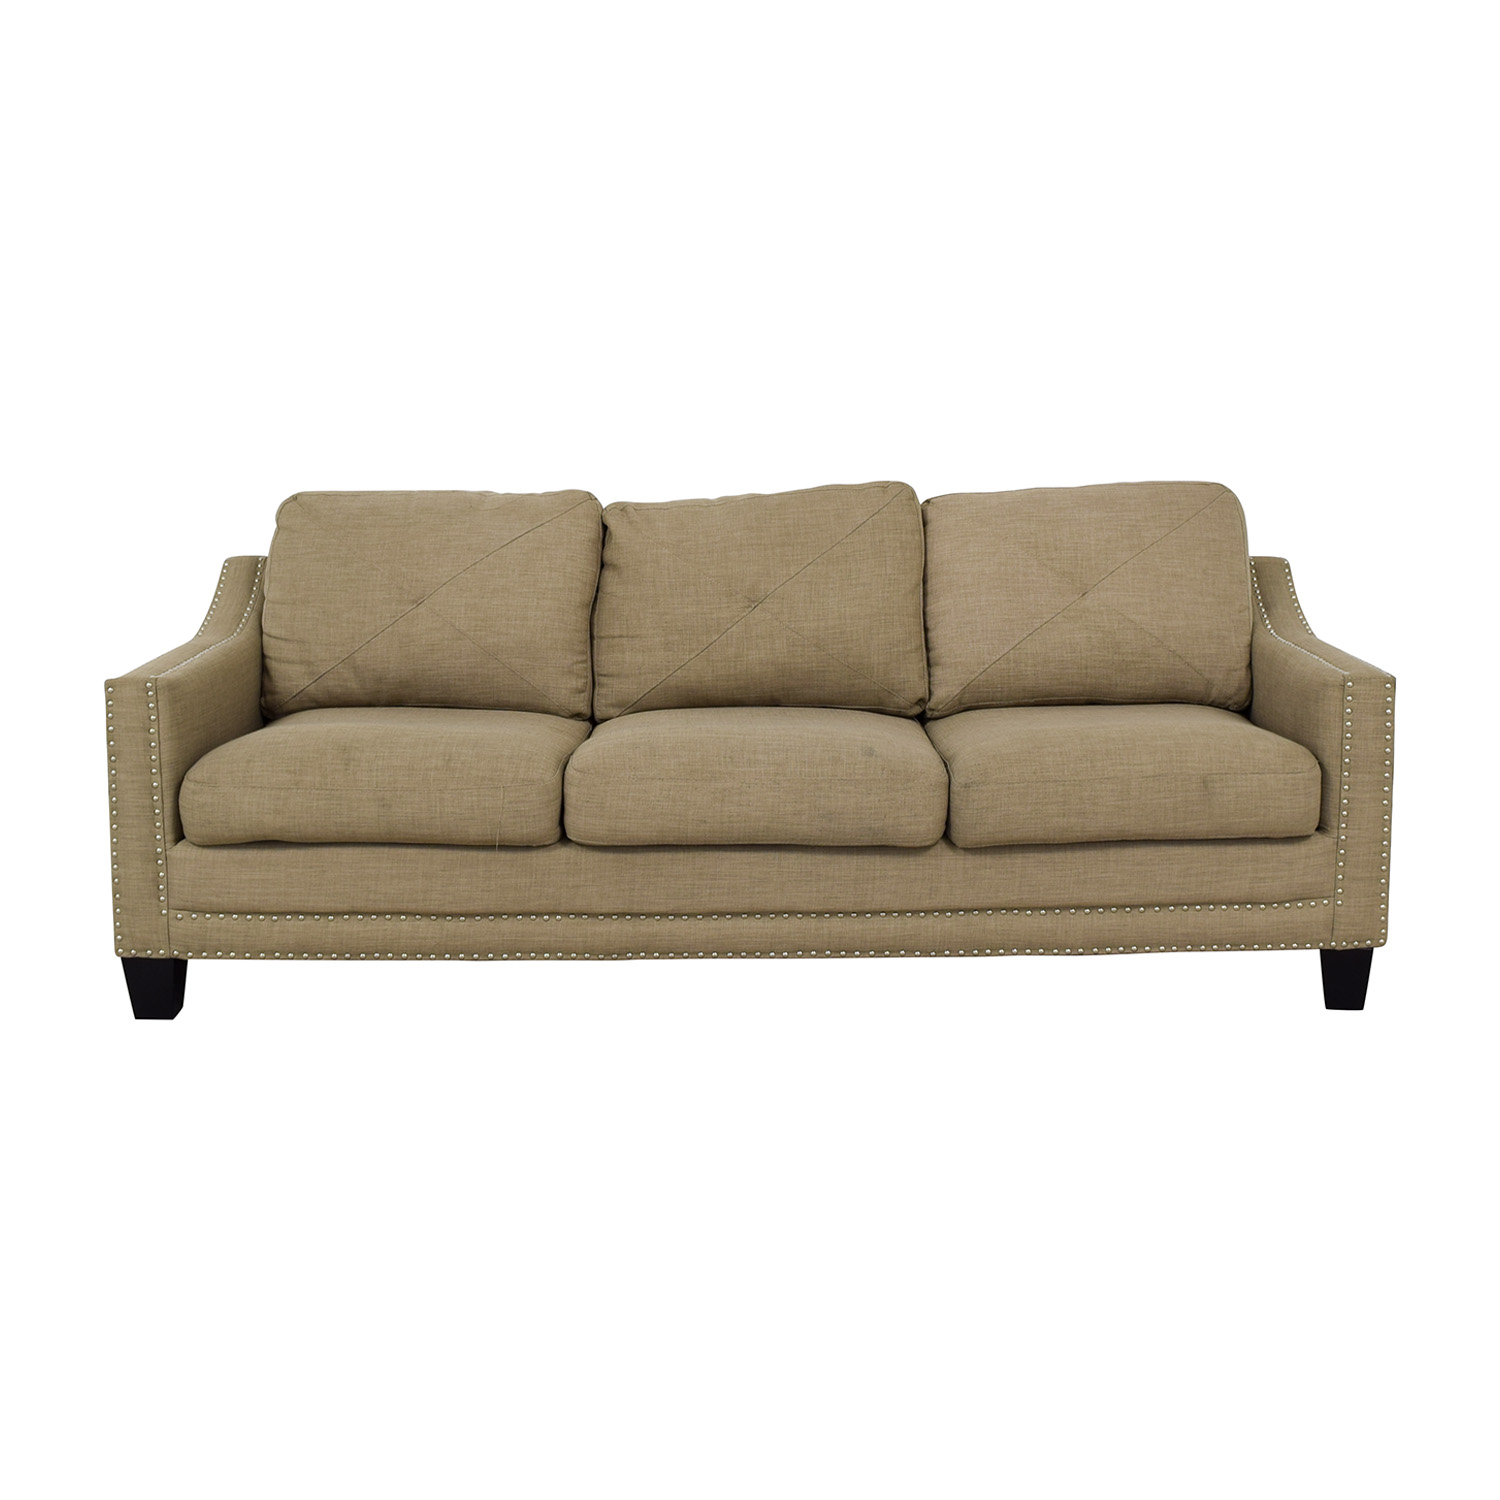 shop Bob's Discount Furniture Three Seater Sofa With Chrome Nailhead Embellishment Bob's Discount Furniture